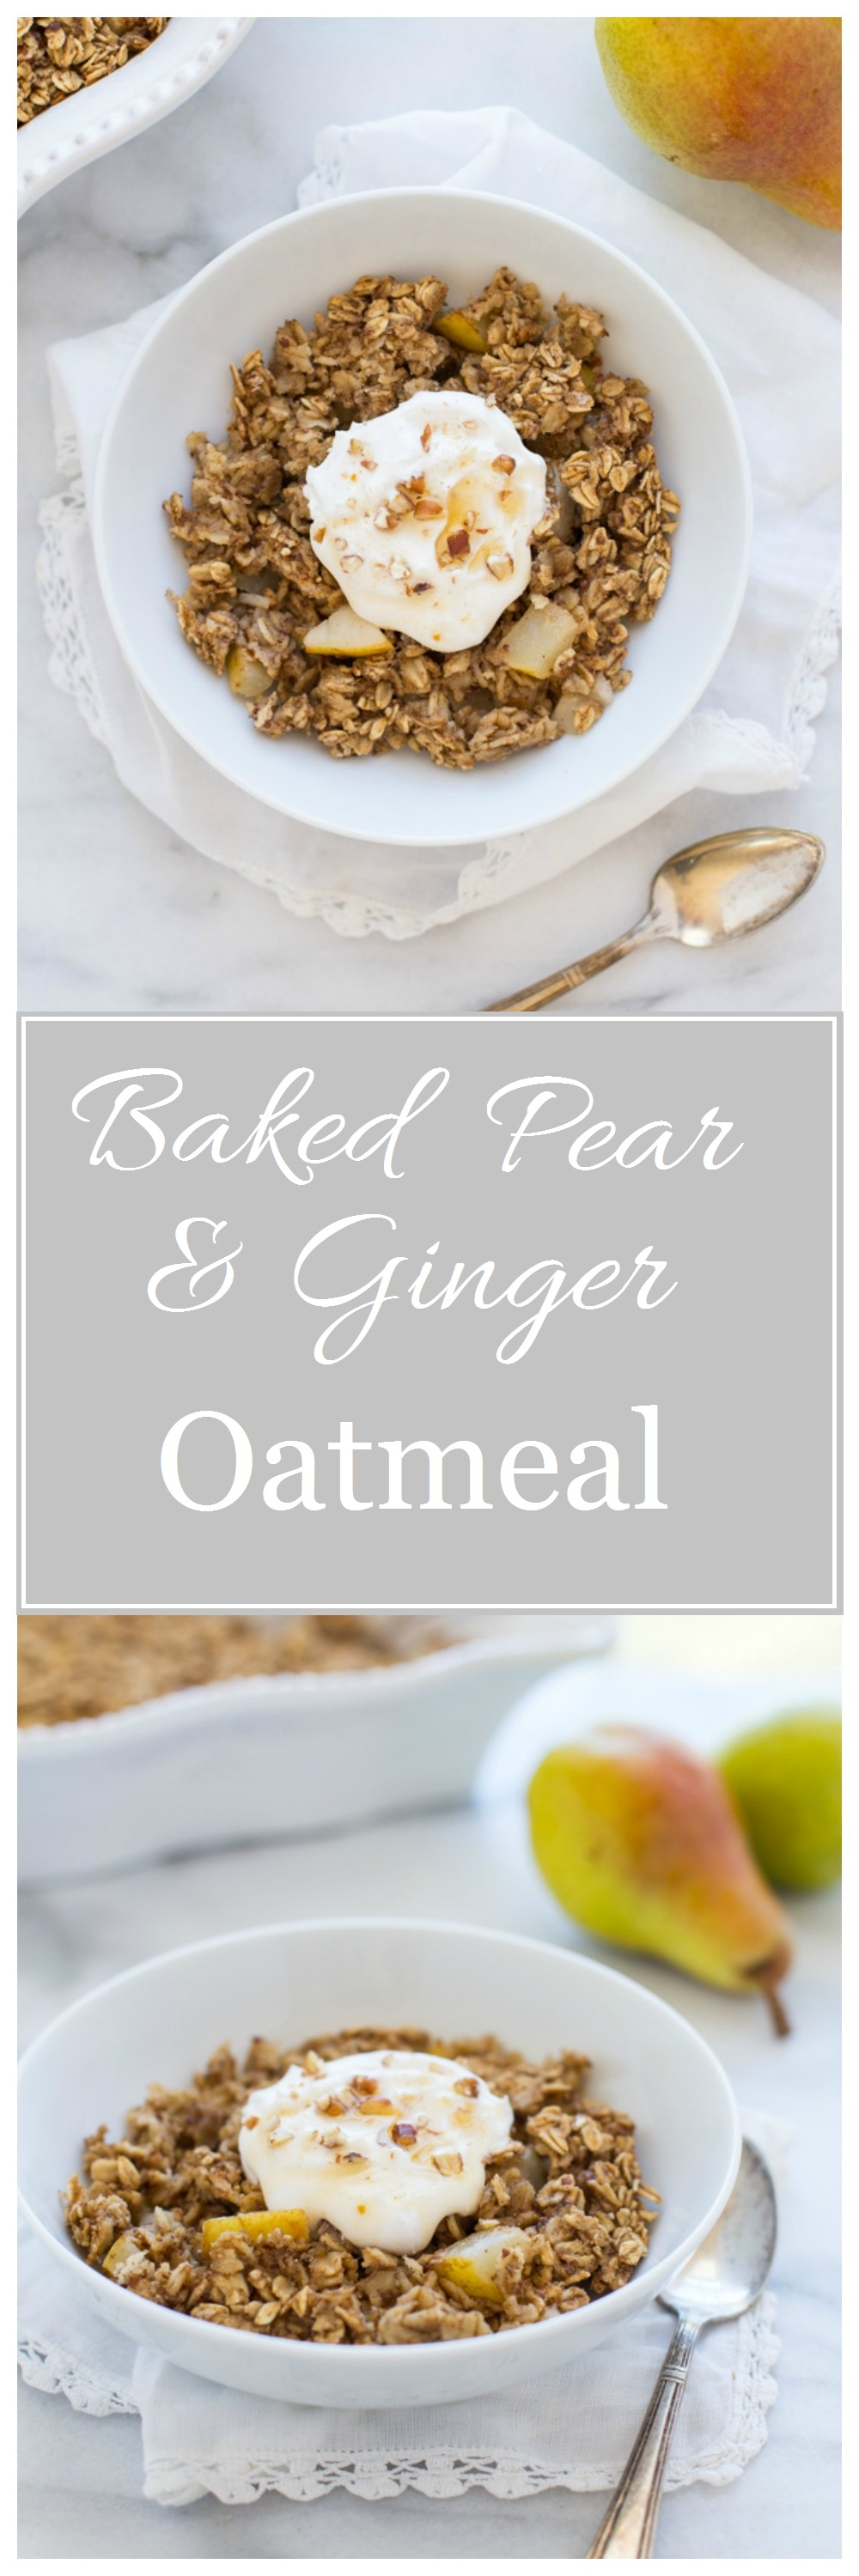 Baked Ginger Pear Oatmeal 0008